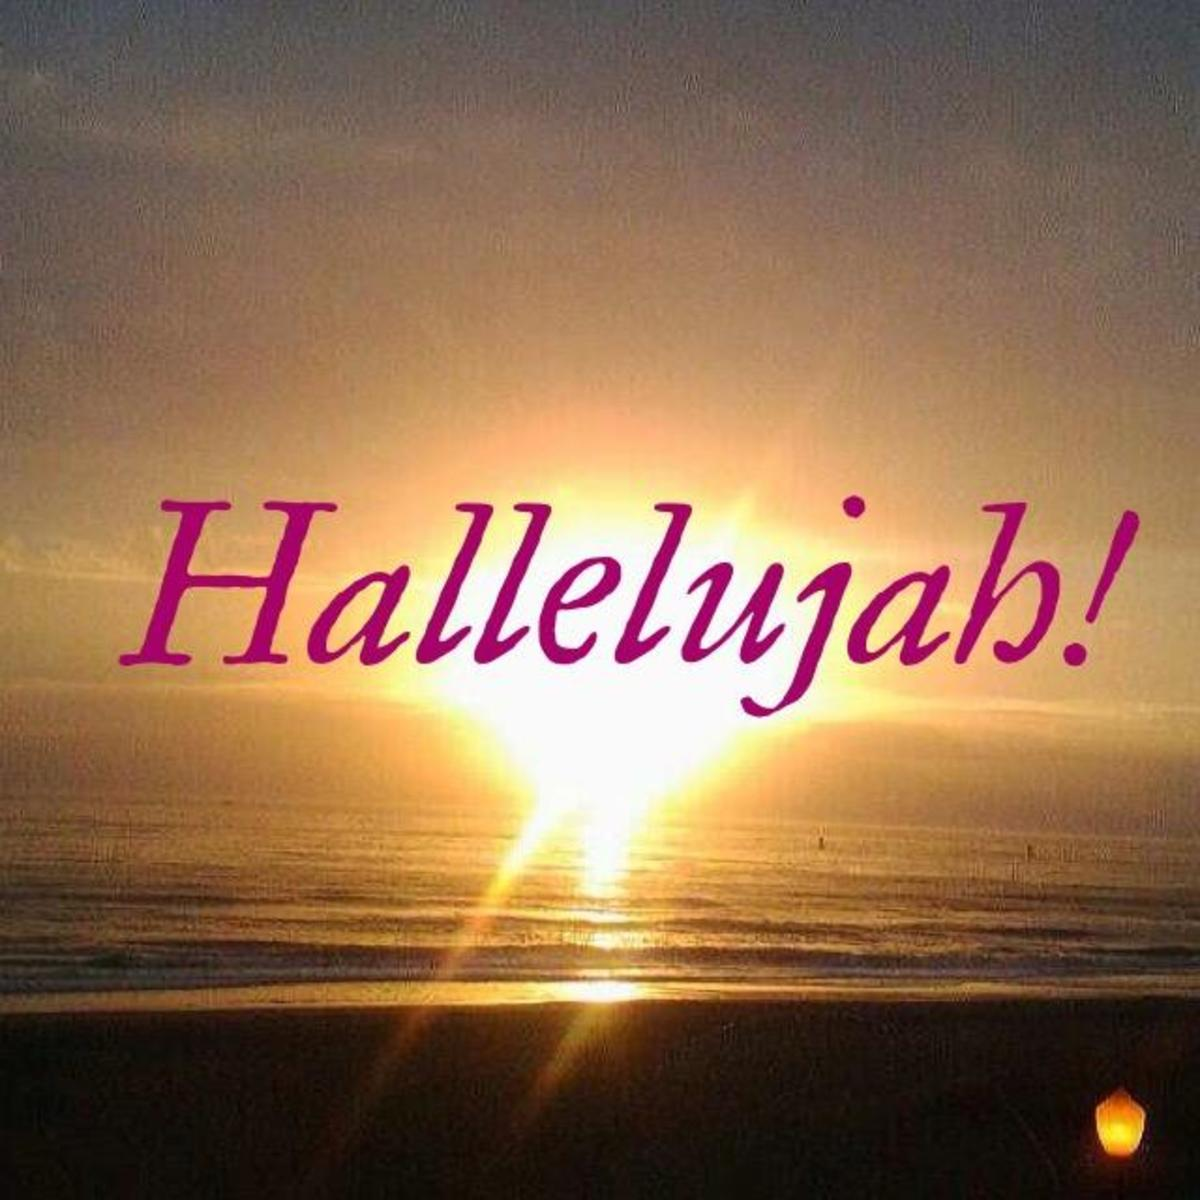 Hallelujah: Bible Word Study | HubPages